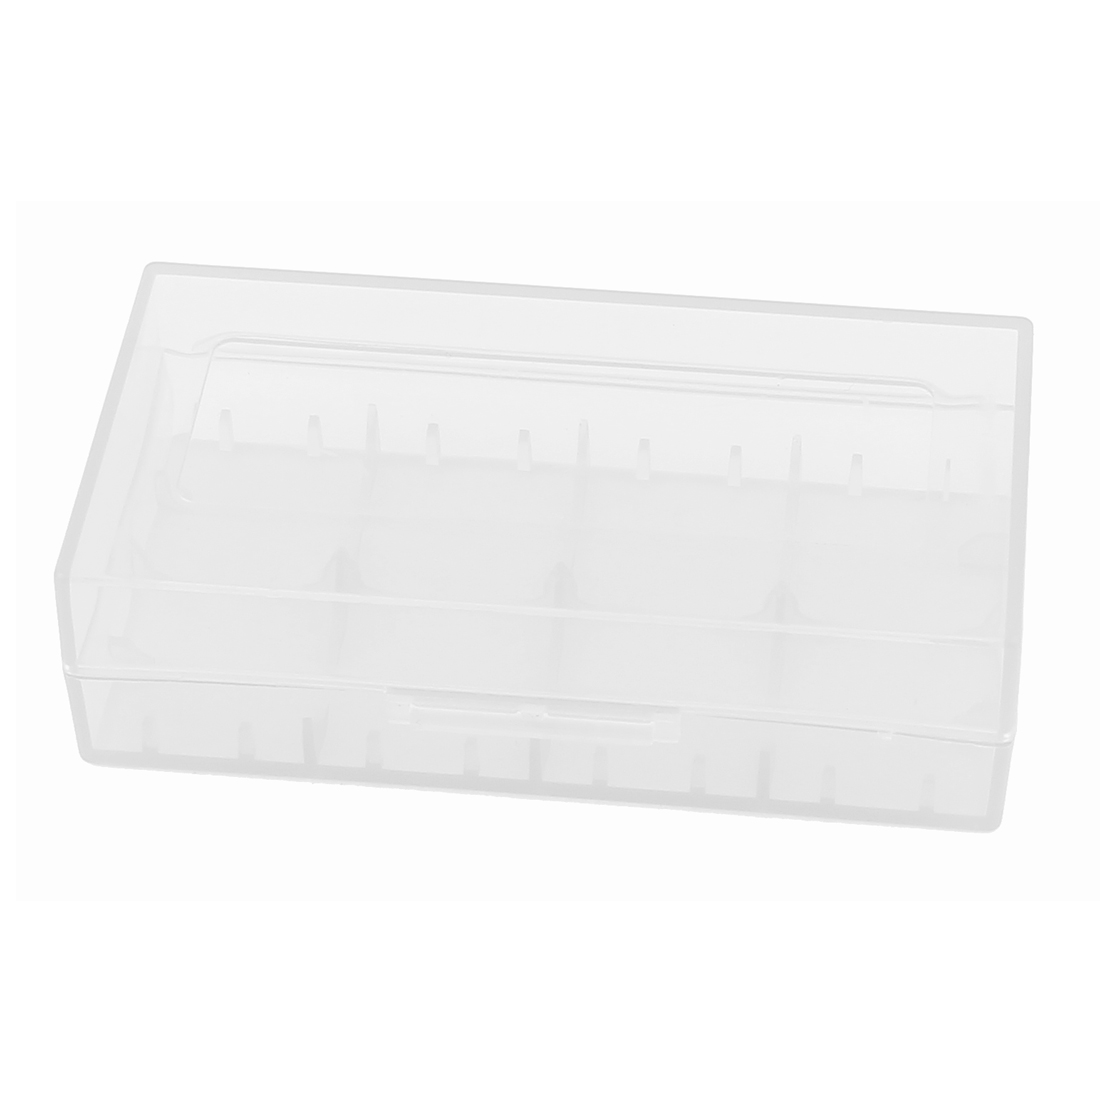 Hard Plastic Case Holder Storage Box White for 18650 16430 CR123A Battery